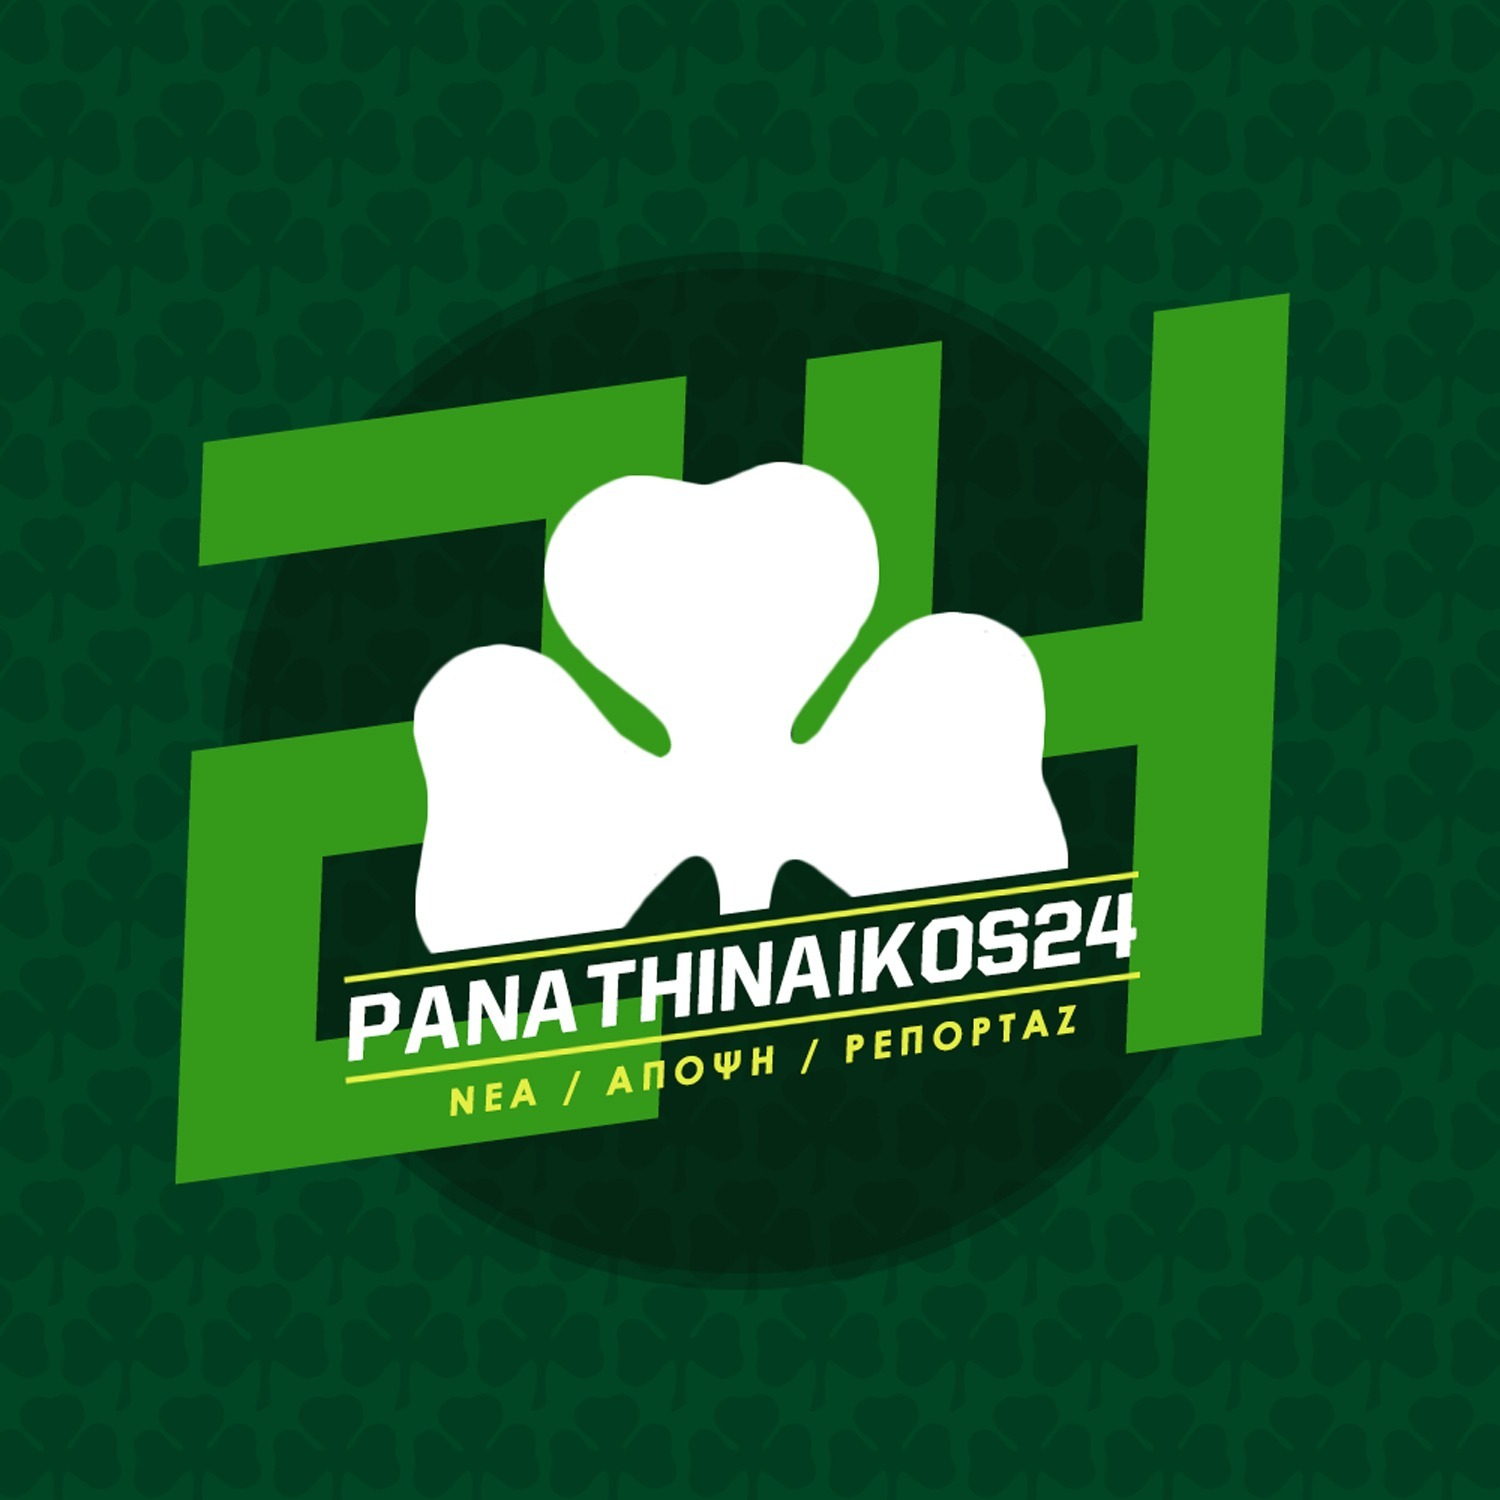 PANATHINAIKOS24 Podcast